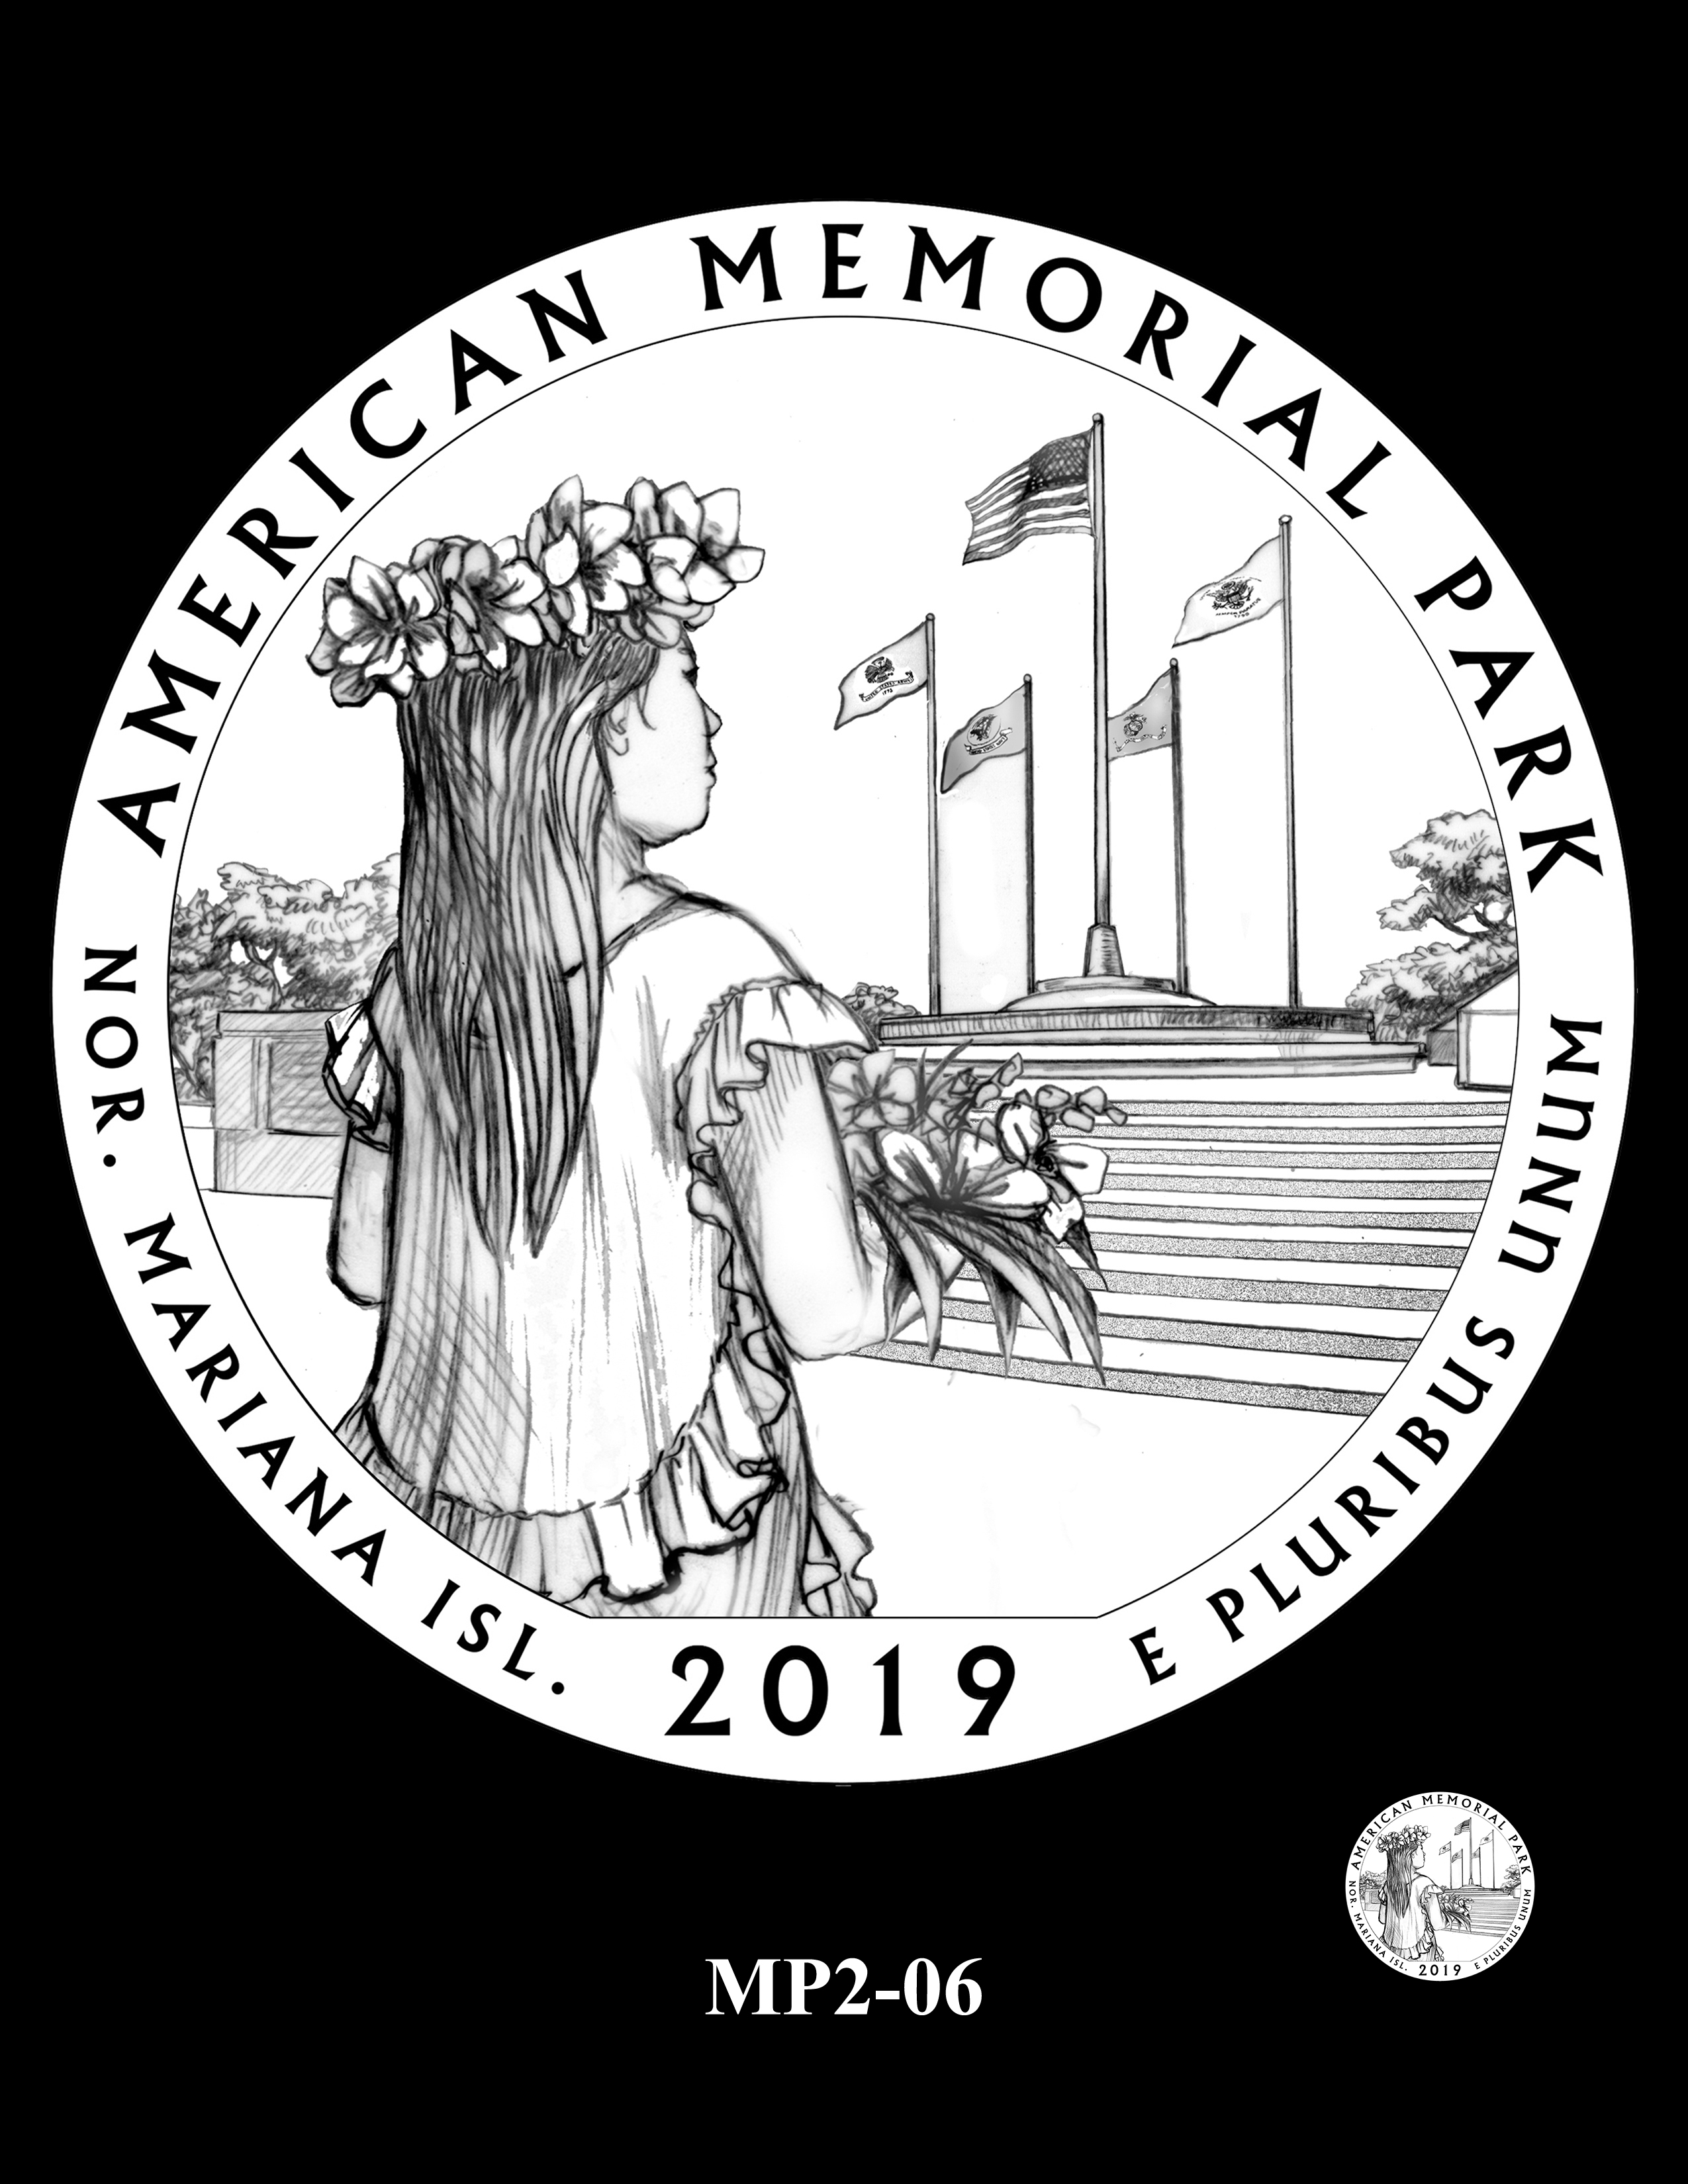 MP2-06 -- 2019 America the Beautiful Quarters® Program